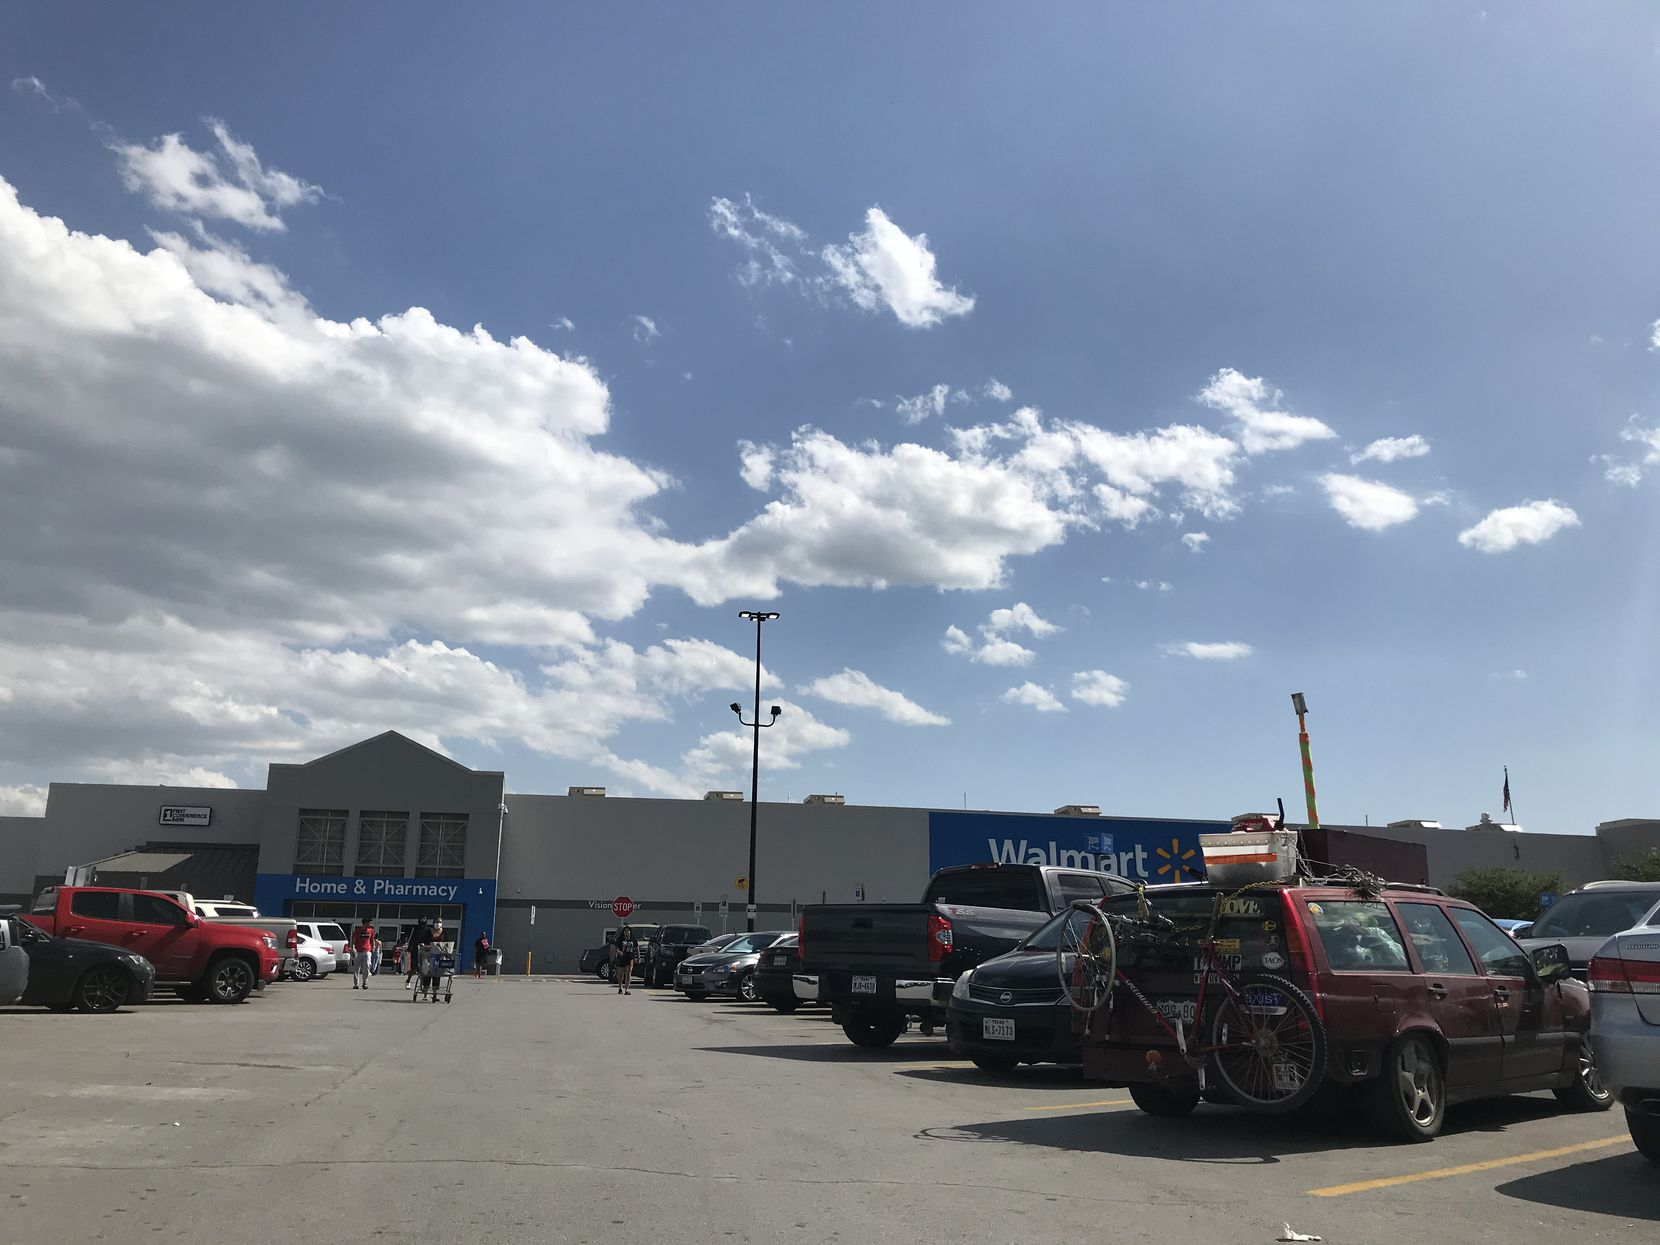 The Walmart parking lot at Cockrell Hill Road and I30 on the afternoon of Friday, April 24, 2020. Some shoppers wore masks to pick up everything from essentials like toilet paper to big-screen television sets.